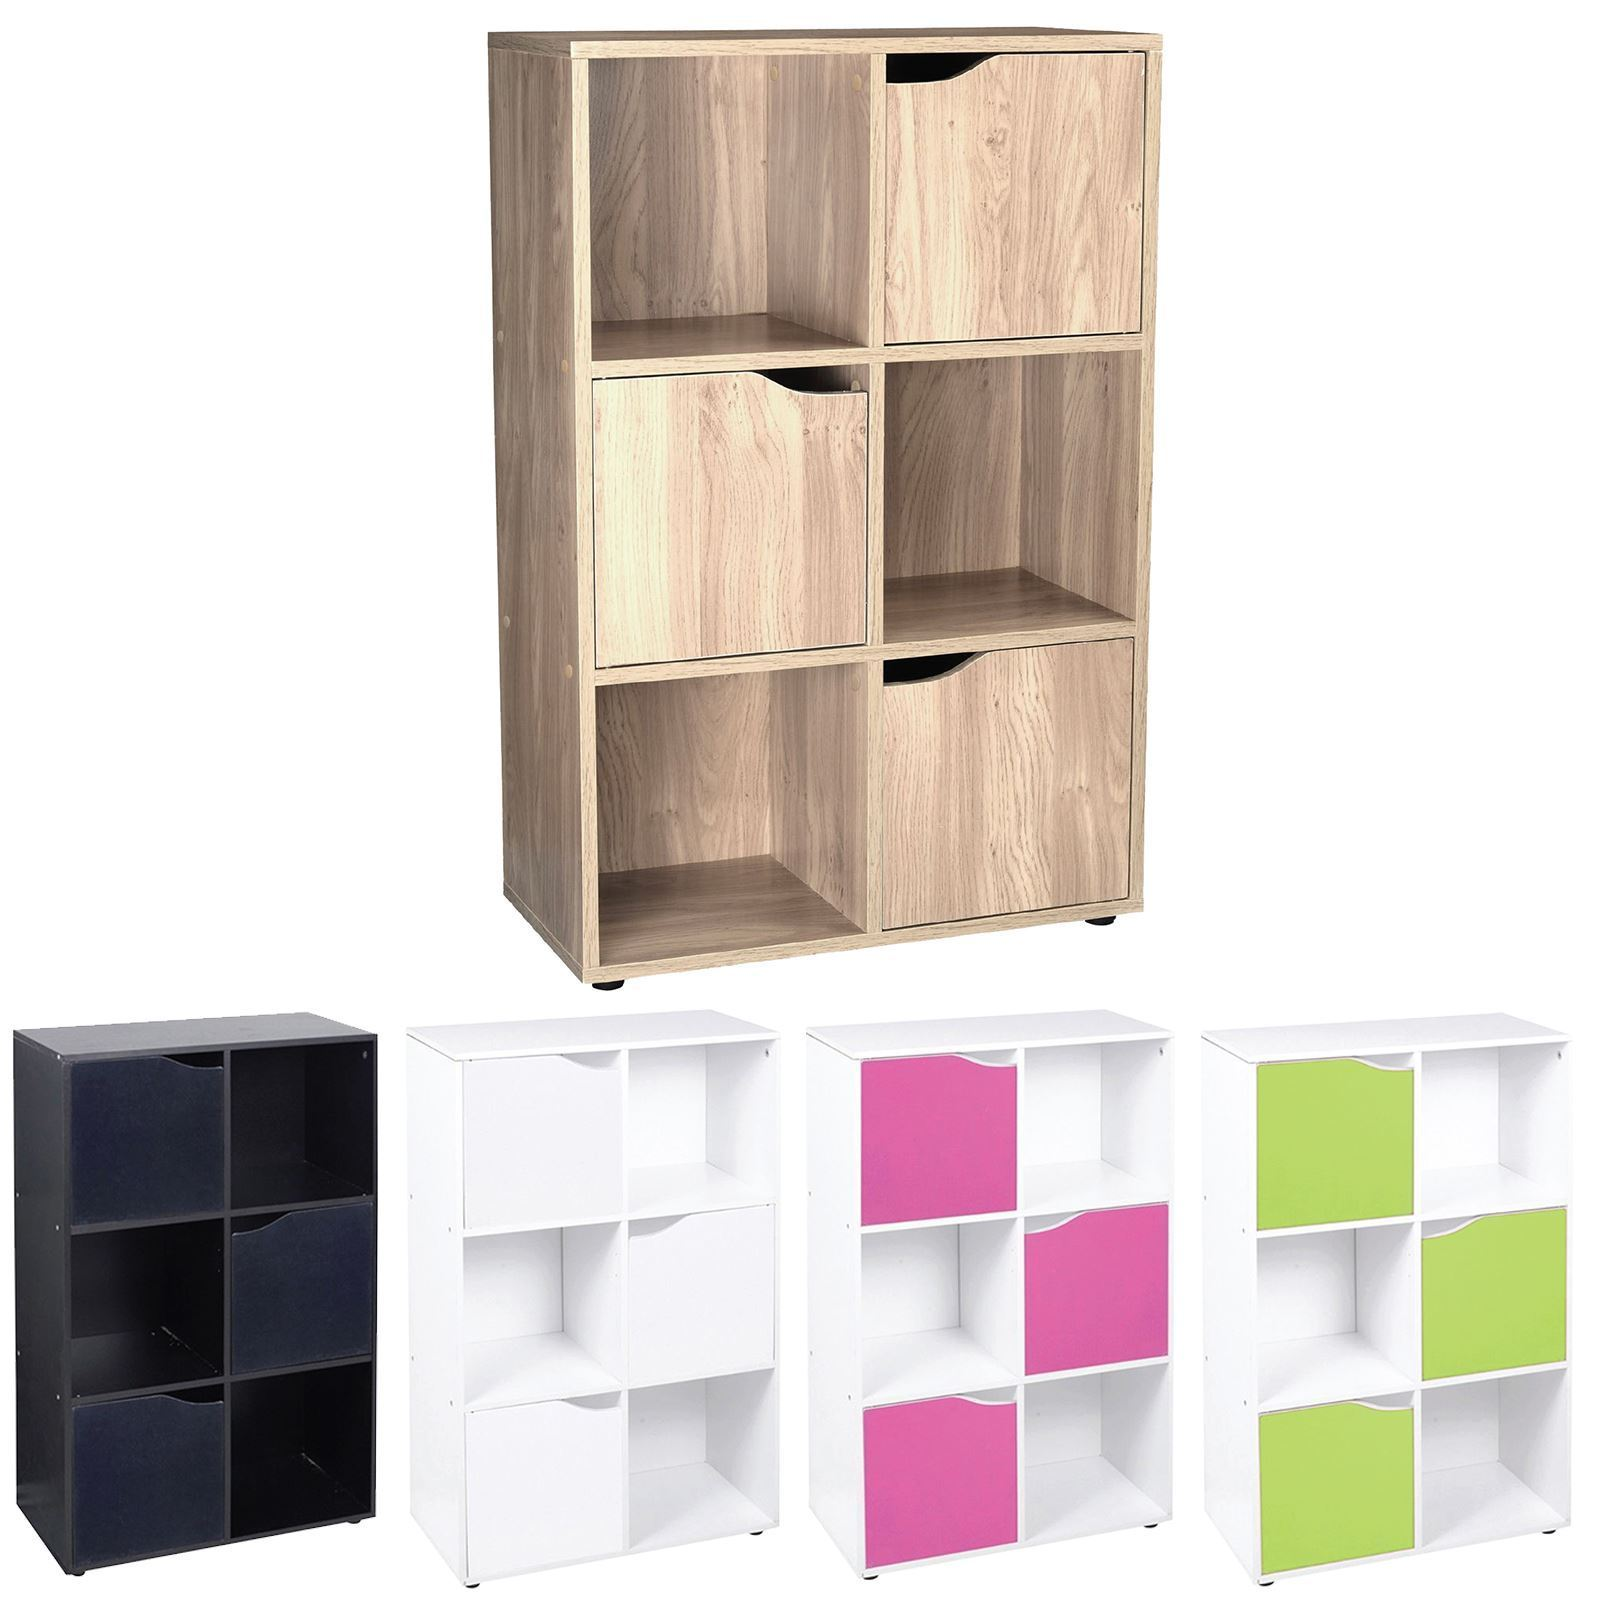 Wooden 10 Cube 10 Doors Storage Unit